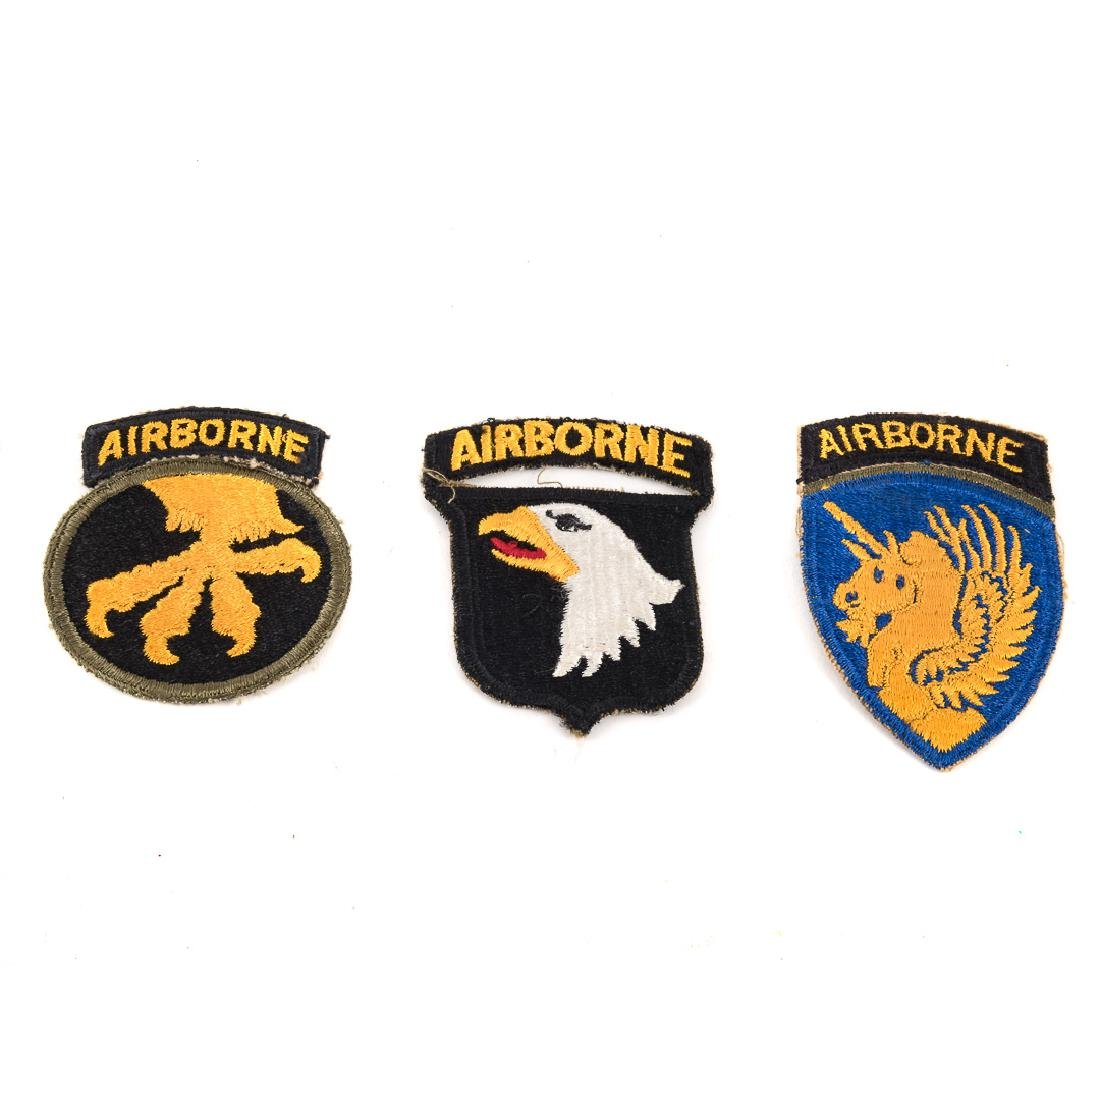 Five US Airborne Div. patches - 3